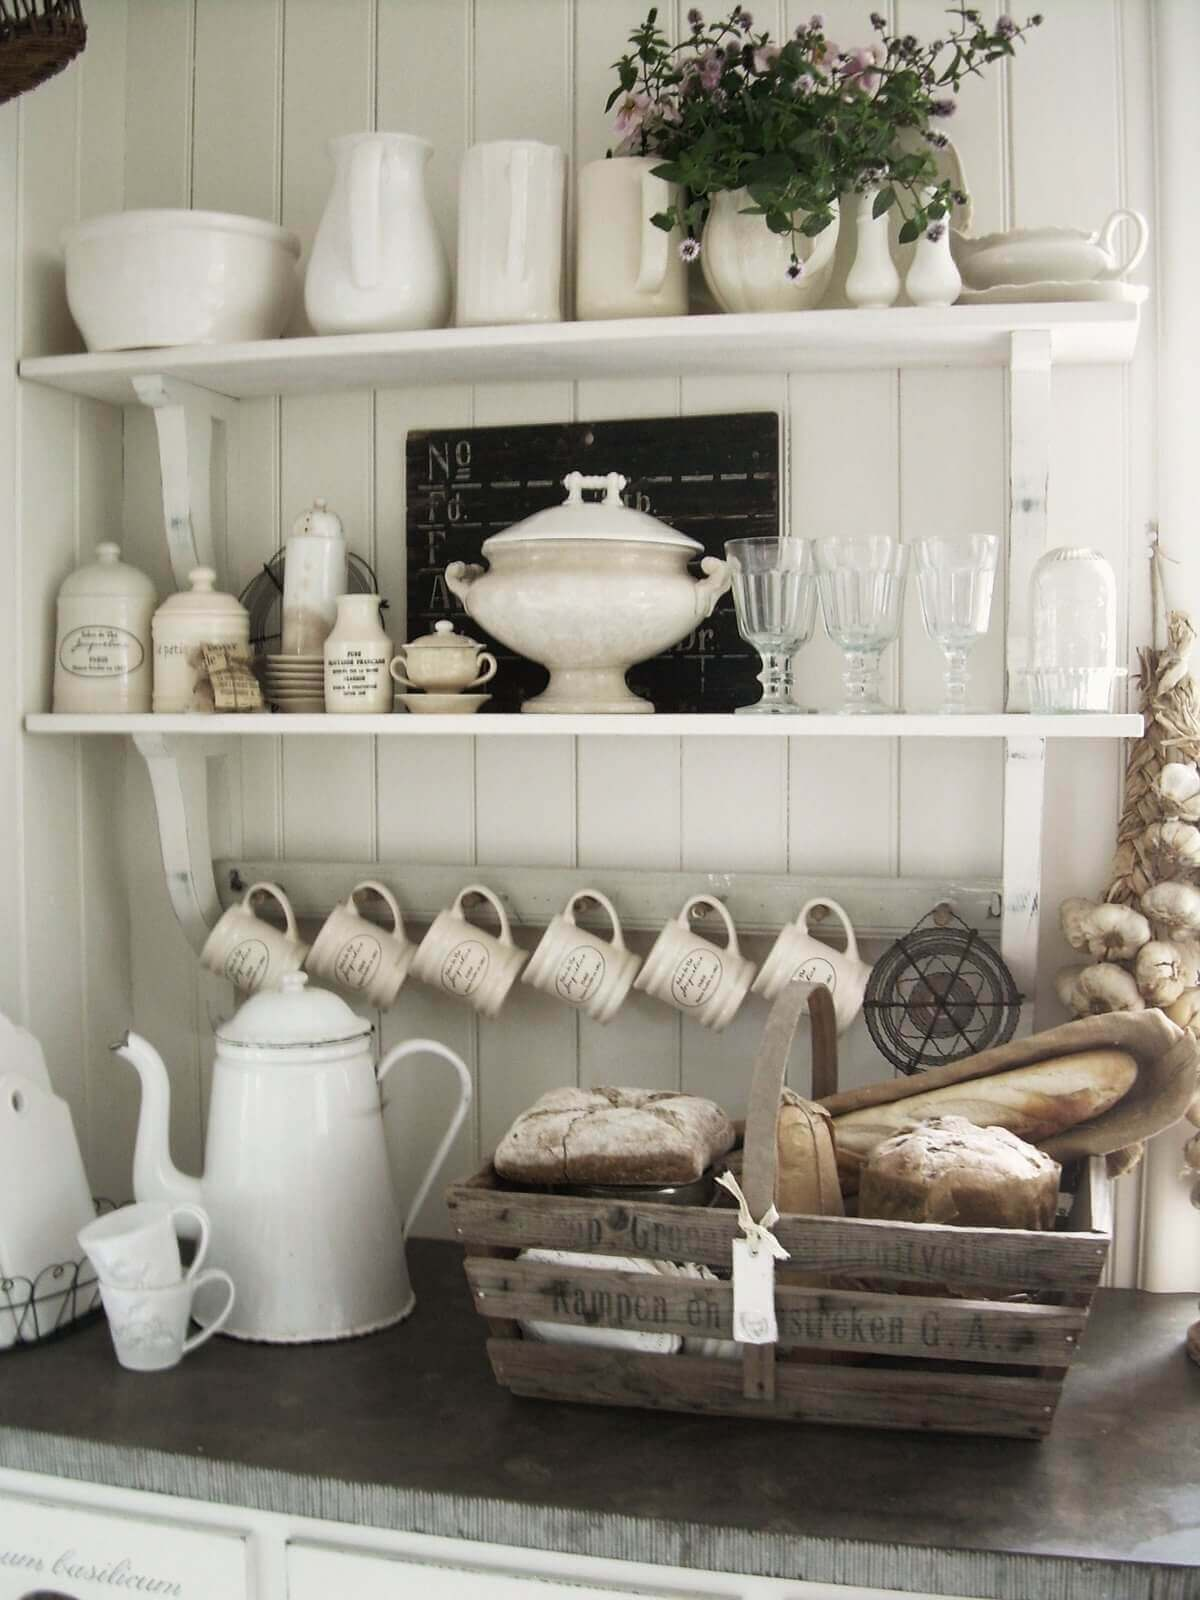 34 Best Vintage Kitchen Decor Ideas and Designs for 2019 Antique S Kitchen Decorating Ideas on antique kitchen lighting, vintage kitchen ideas, antique kitchen remodeling ideas, antique luxury kitchens, antique kitchen painting, antique wallpaper ideas, antique vintage kitchen, old kitchen ideas, antique kitchen rugs, antique kitchen decor, antique kitchen tools ideas, antique door ideas pinterest, antique kitchen cleaning, antique kitchen design, antique kitchen fireplaces, rooster kitchen theme ideas, antique kitchen cabinets, antique kitchen cupboards, painted kitchen cabinet ideas, retro kitchen ideas,